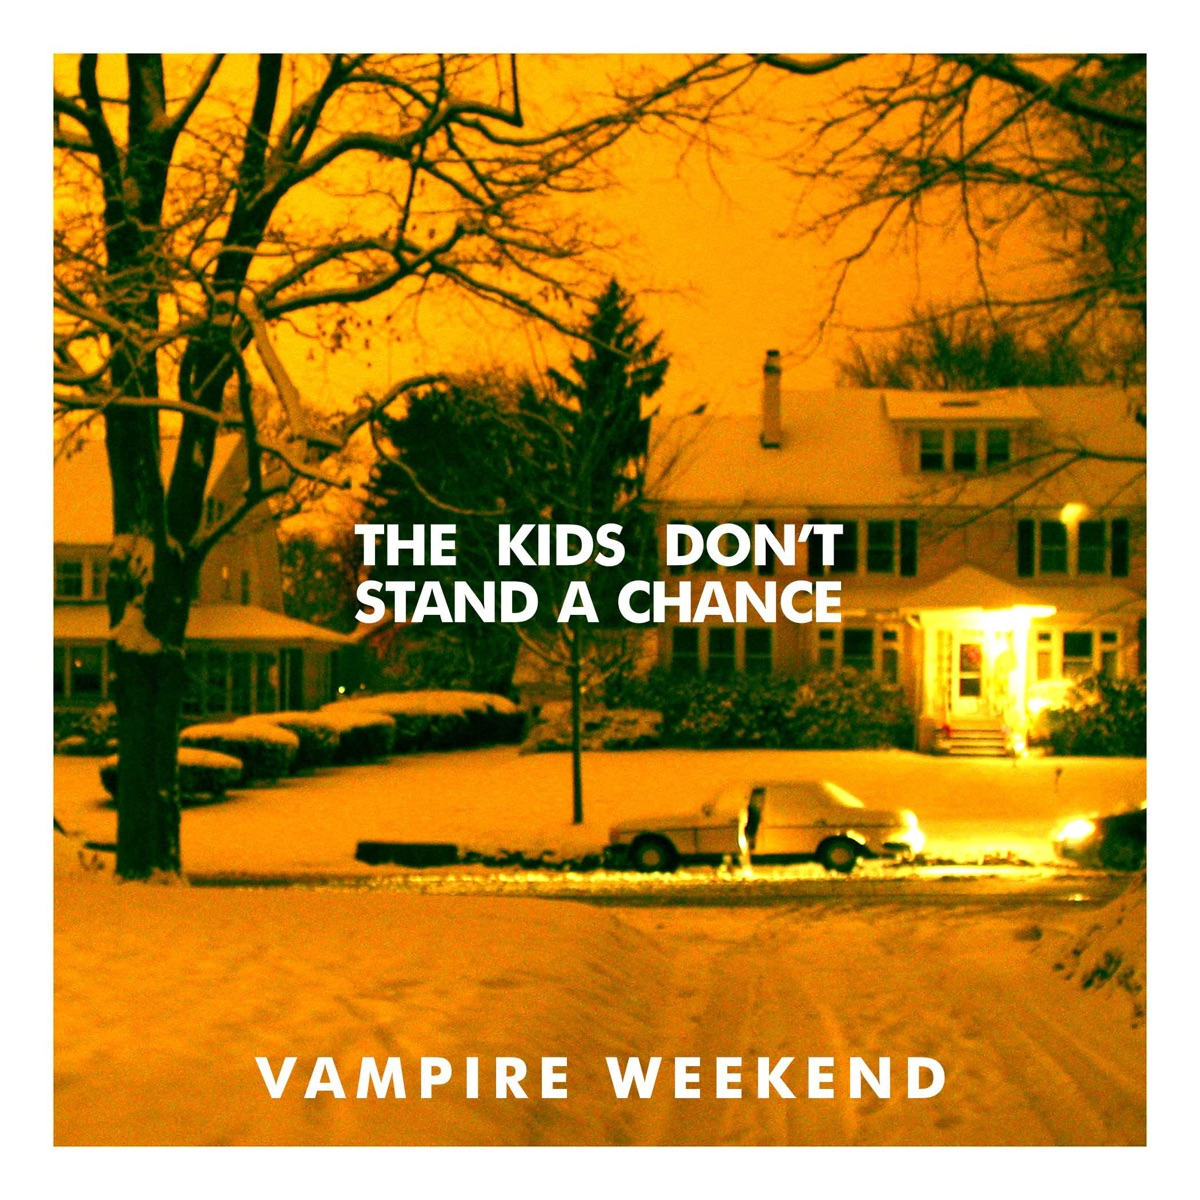 The Kids Dont Stand a Chance - Single Vampire Weekend CD cover